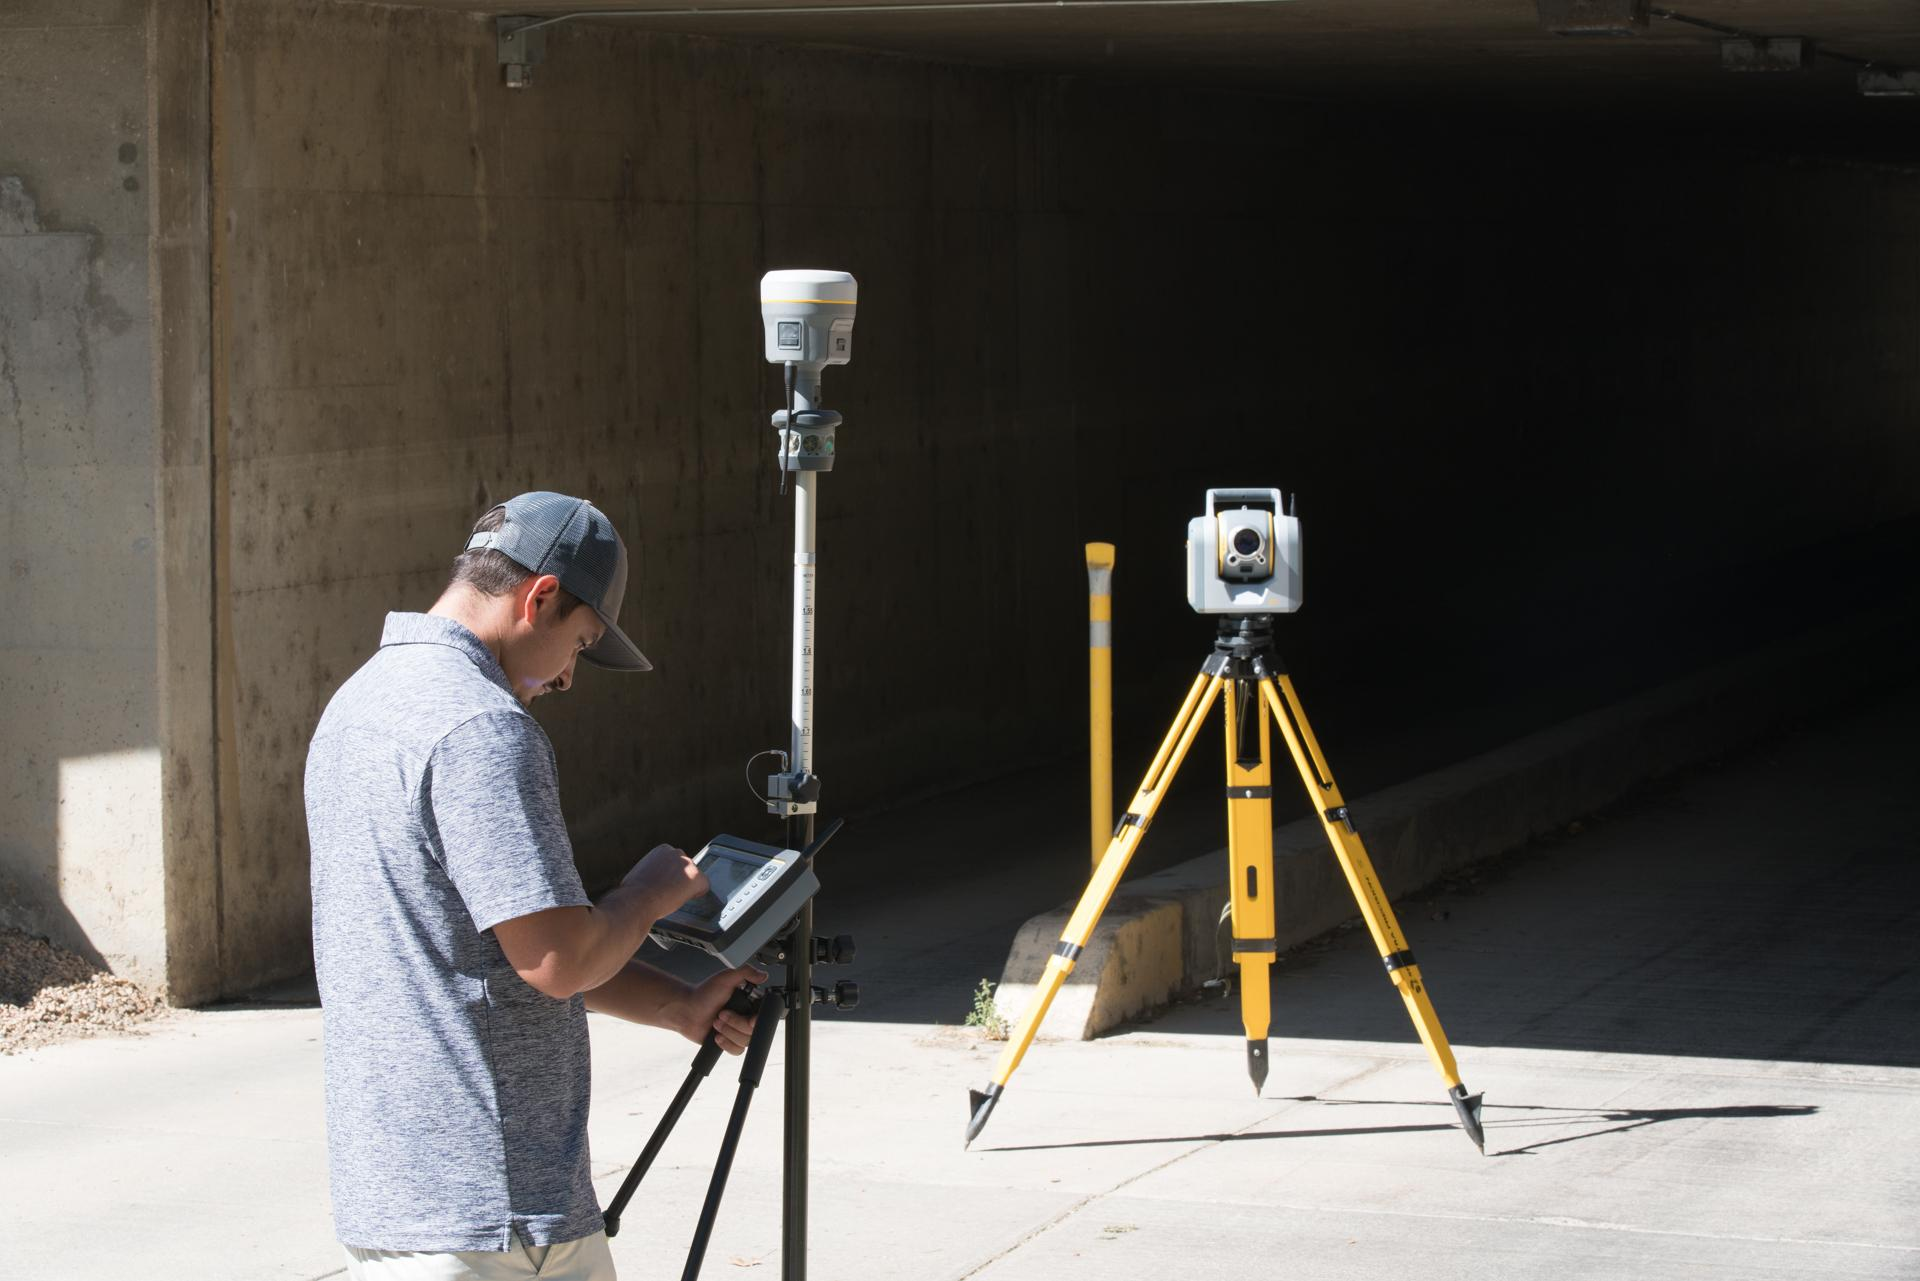 Trimble SX 10 Totalstation